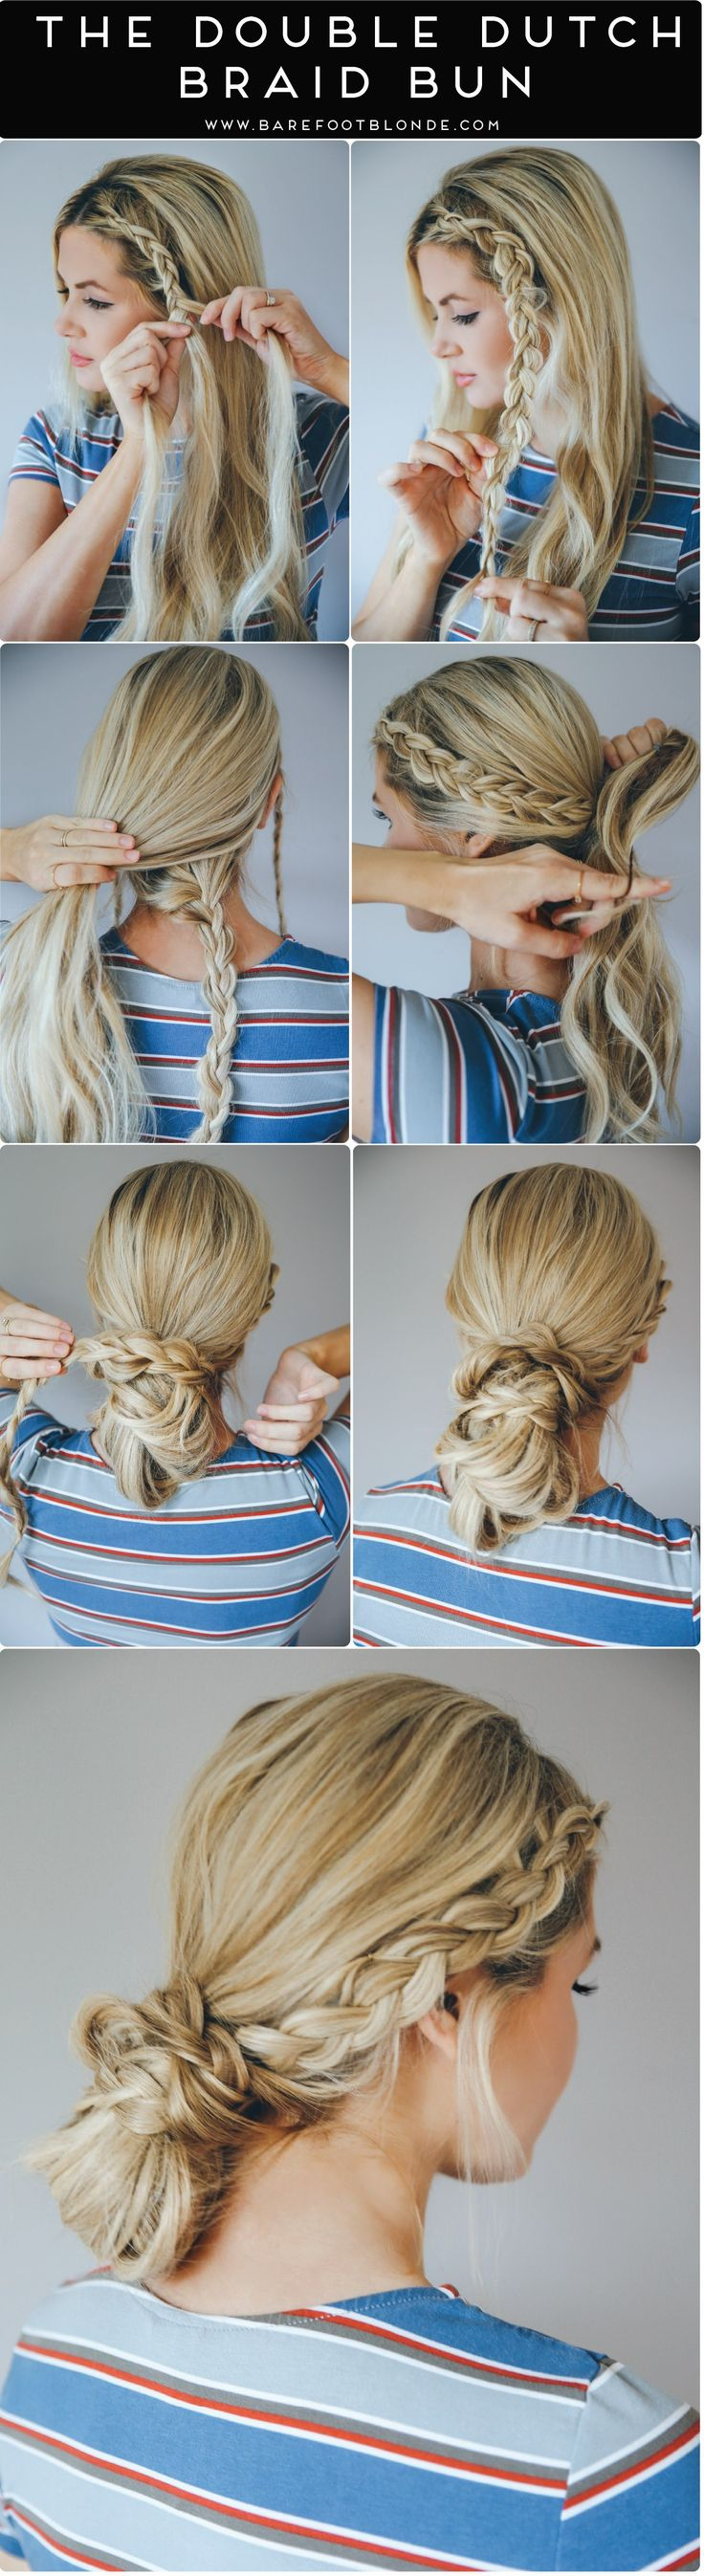 Braids can be a real life saver when it comes to bad hair days. Not only are they quick and easy to do, they look great and can even be in a done that makes frizzy hair look like it was intentionally messy. Without further ado, here are some gorgeous braid tutorials that will give …